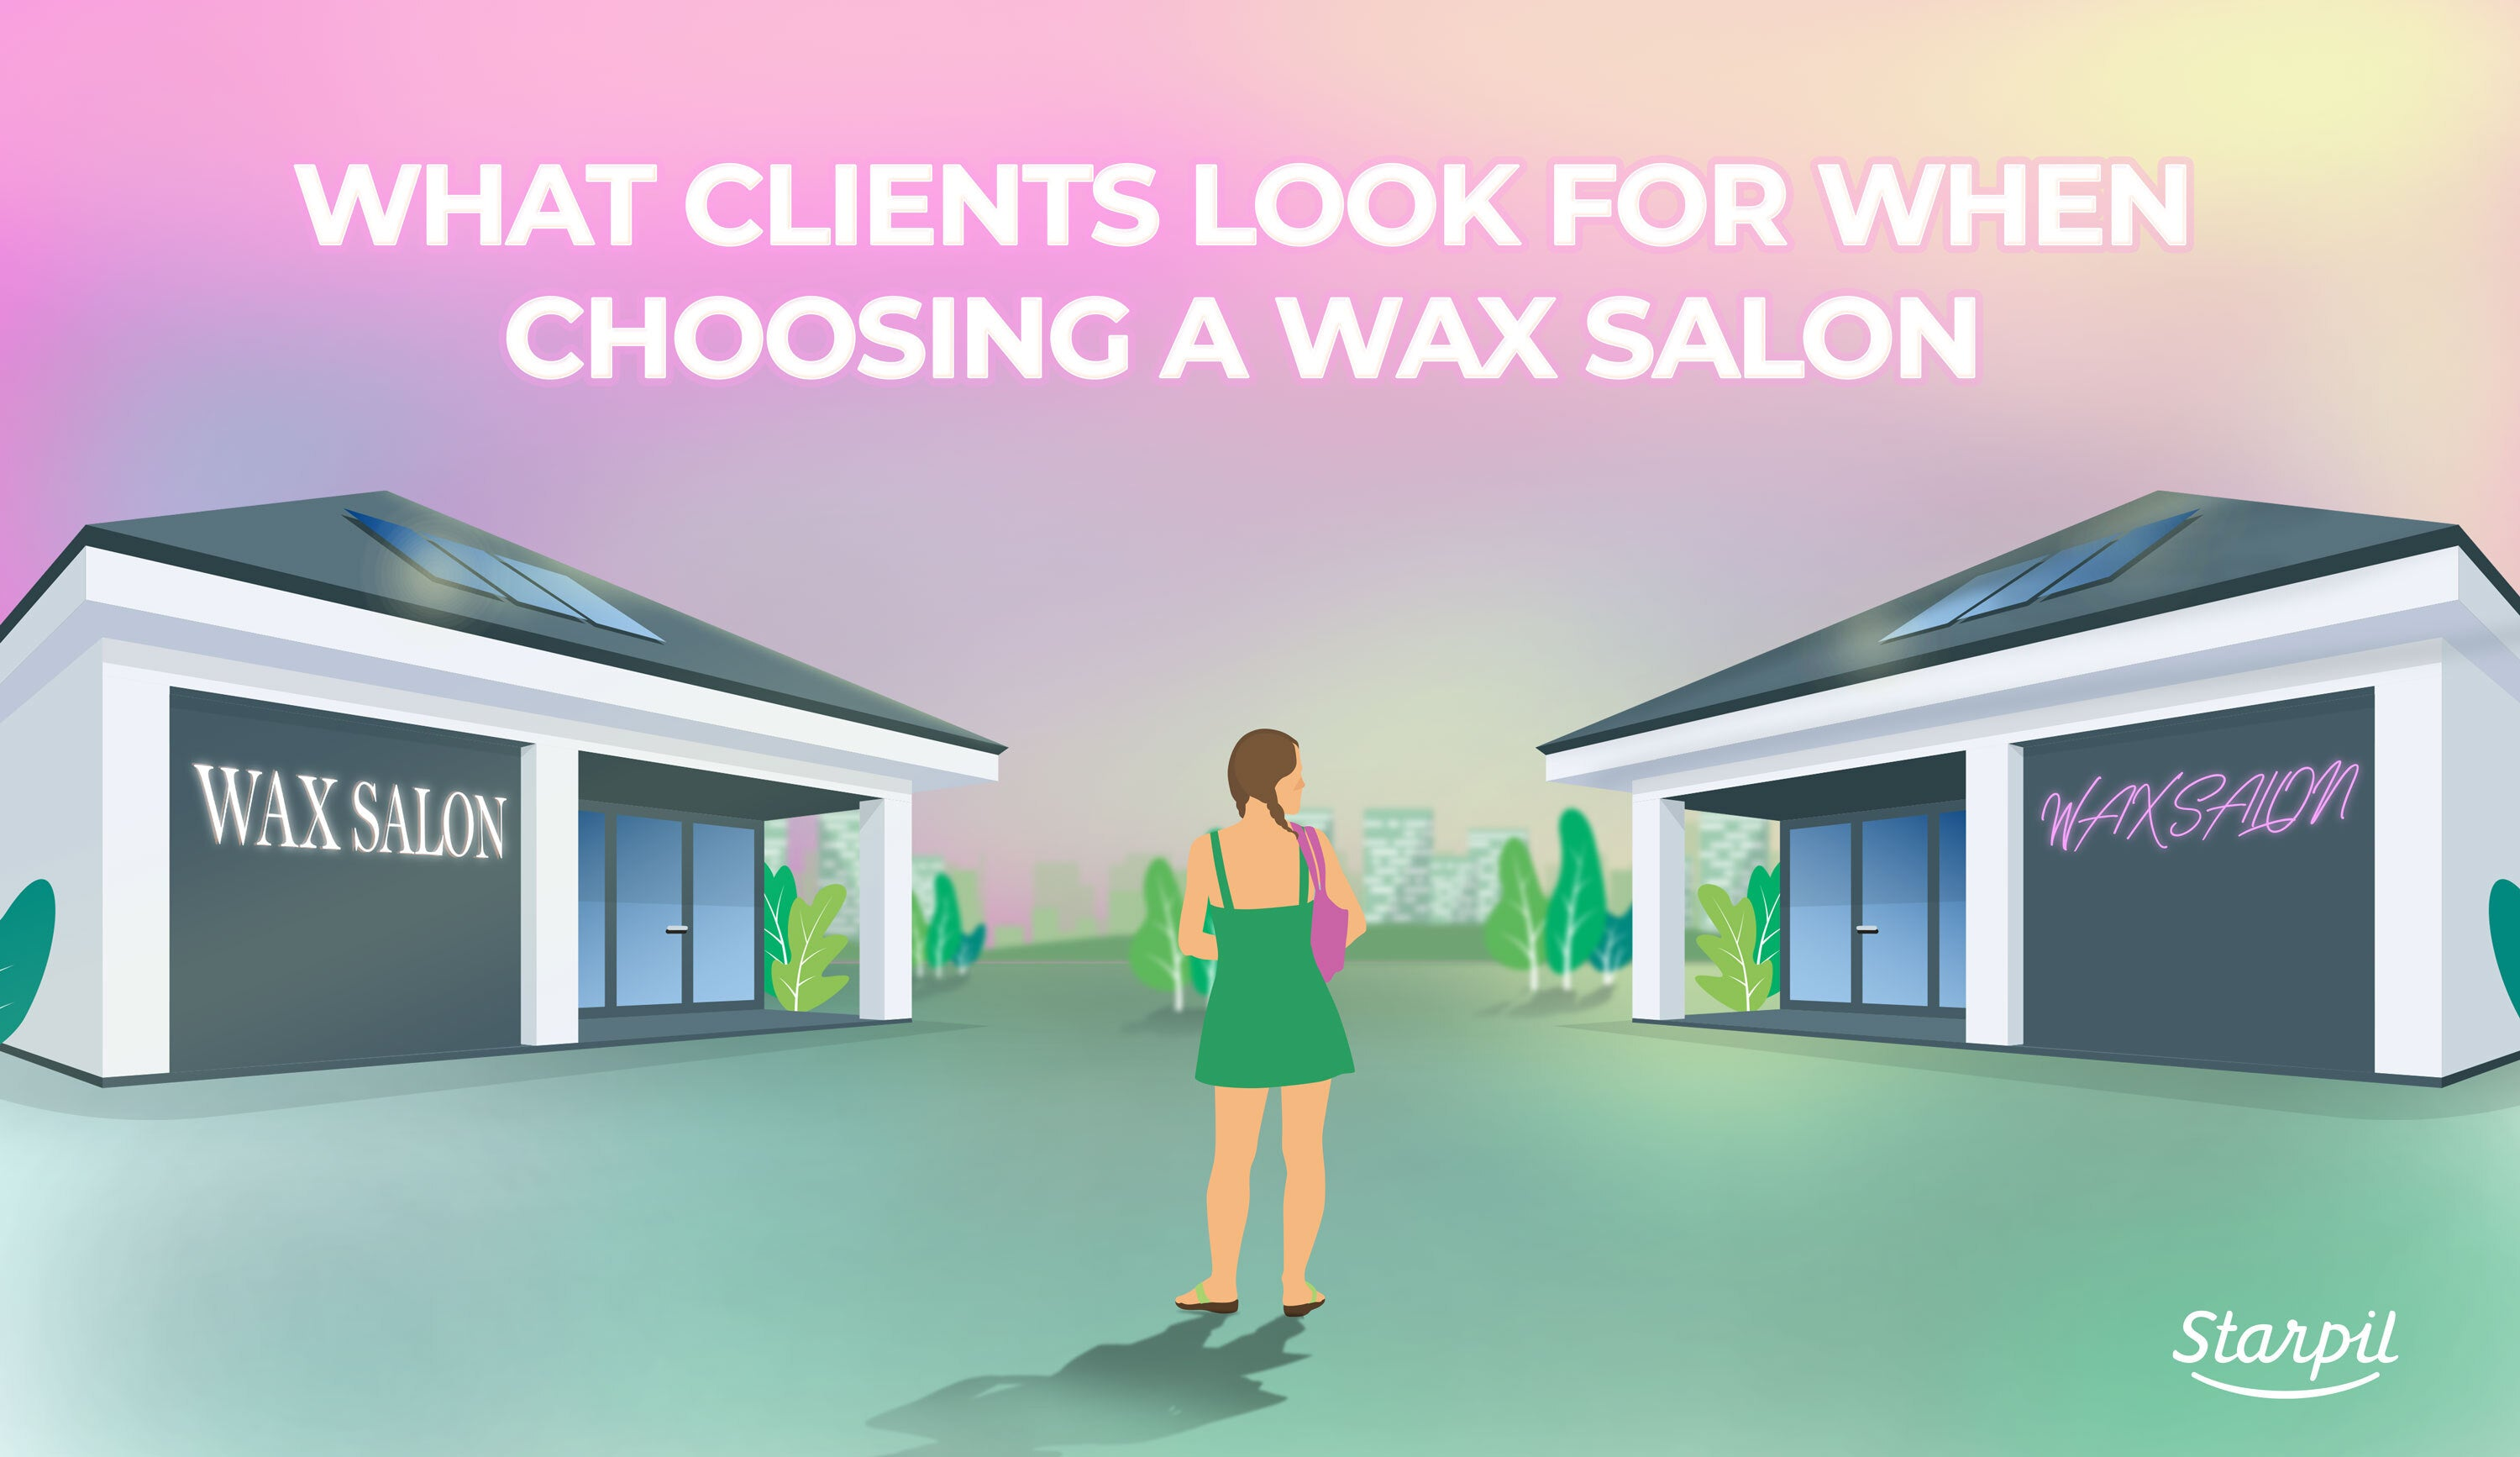 What Clients Look for When Choosing a Wax Salon